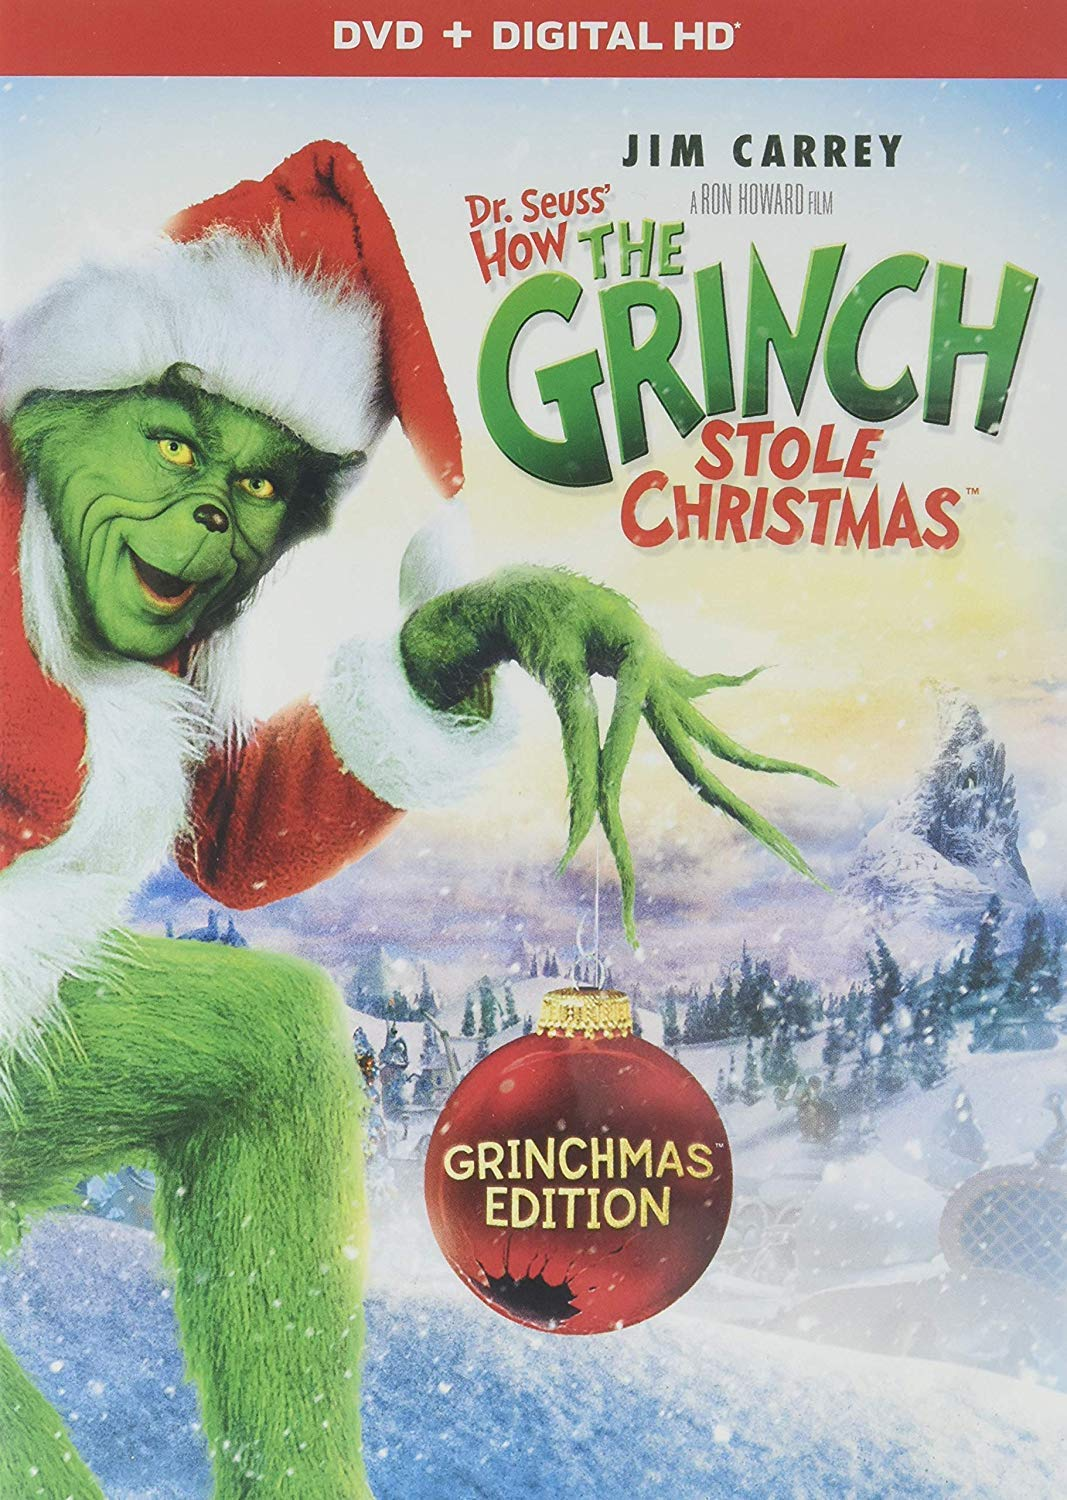 Dr. Seuss' The Grinch - Dr Seuss' How The Grinch Stole Christmas